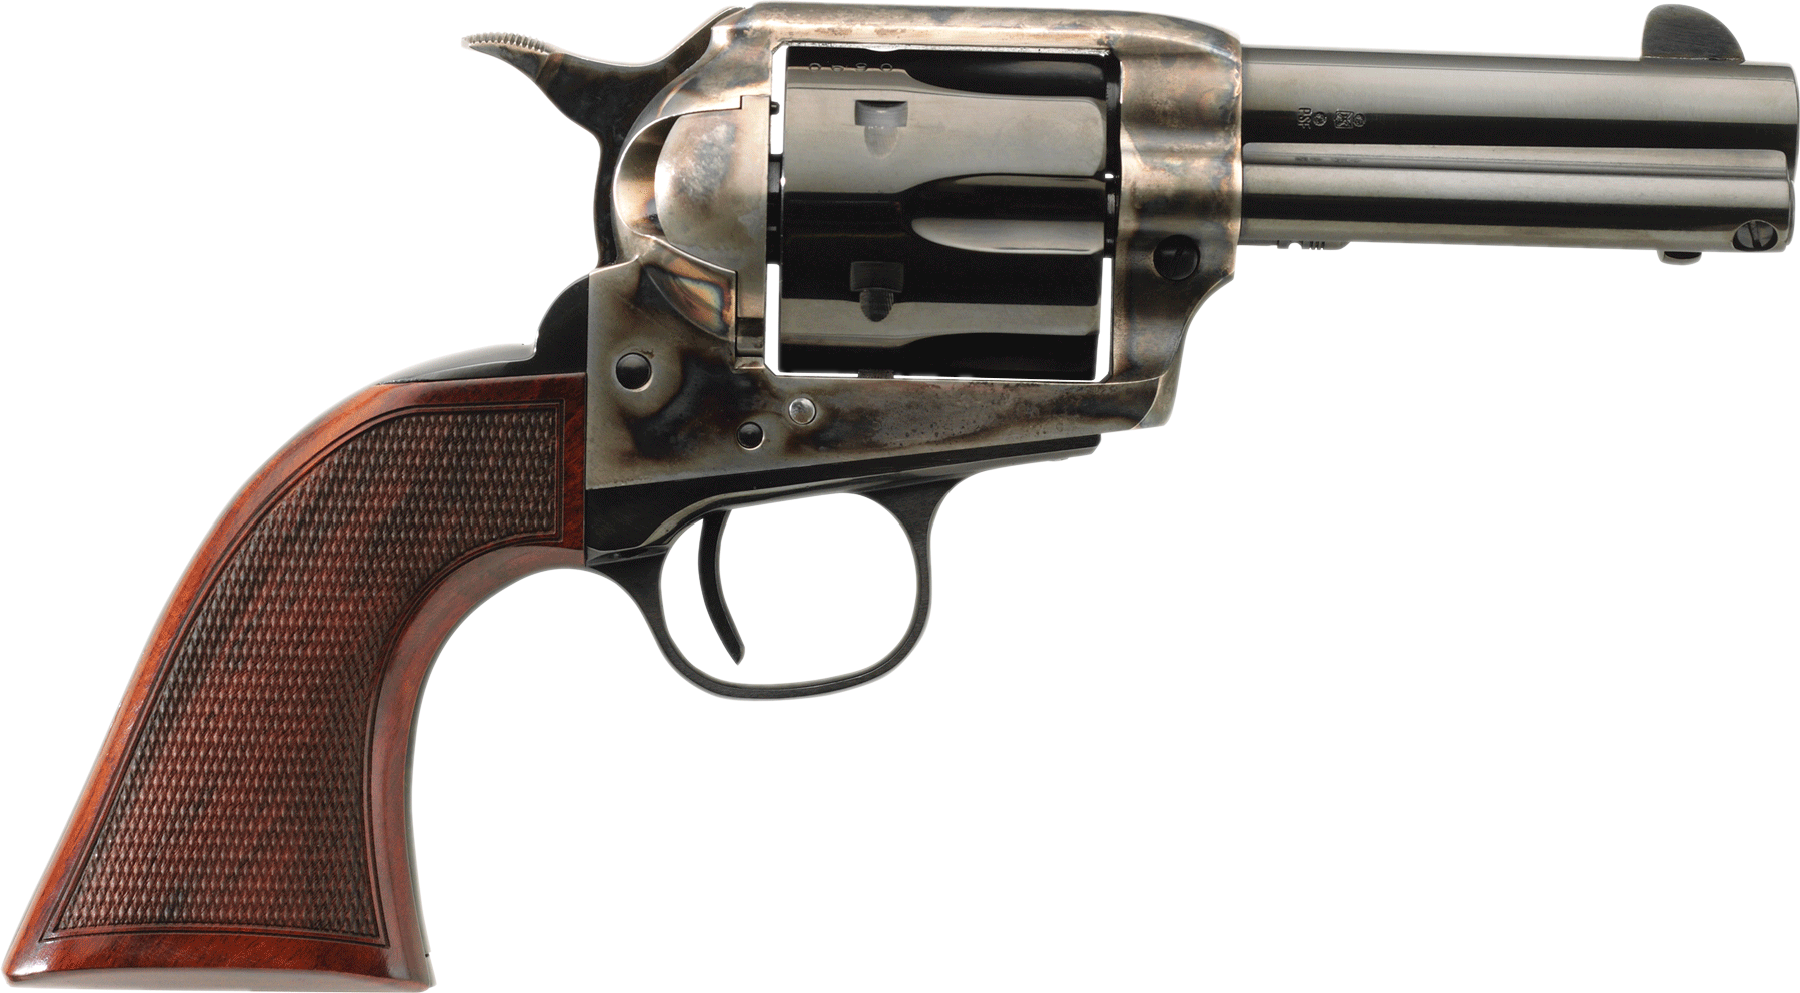 Taylor's & Co Runnin' Iron Revolver - .45 Colt 6rd - 4.75